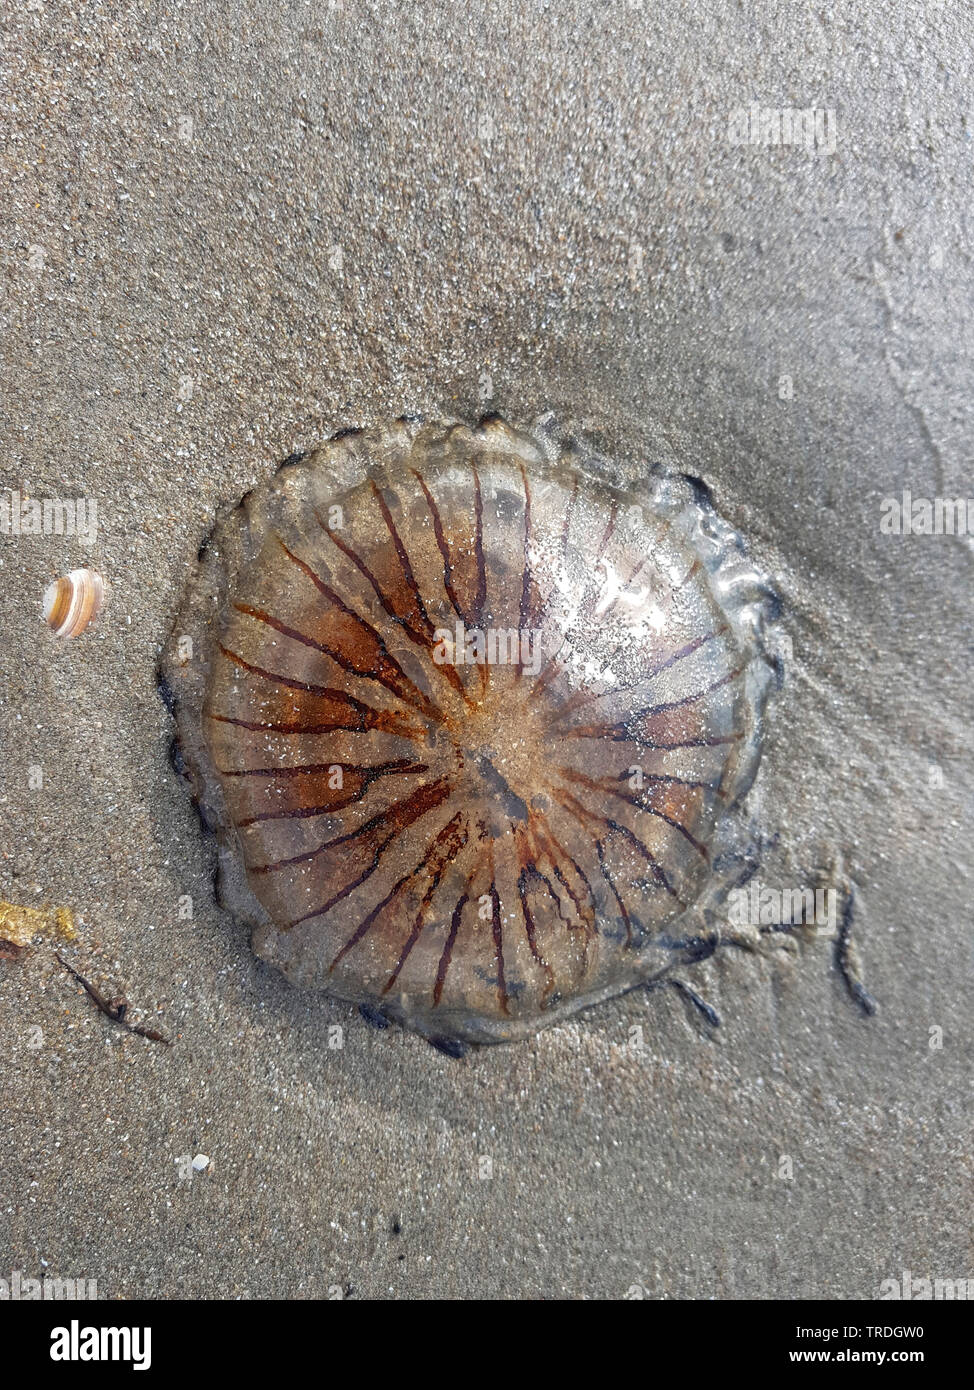 compass jellyfish, red-banded jellyfish (Chrysaora hysoscella), washed up on the beach, Netherlands Stock Photo